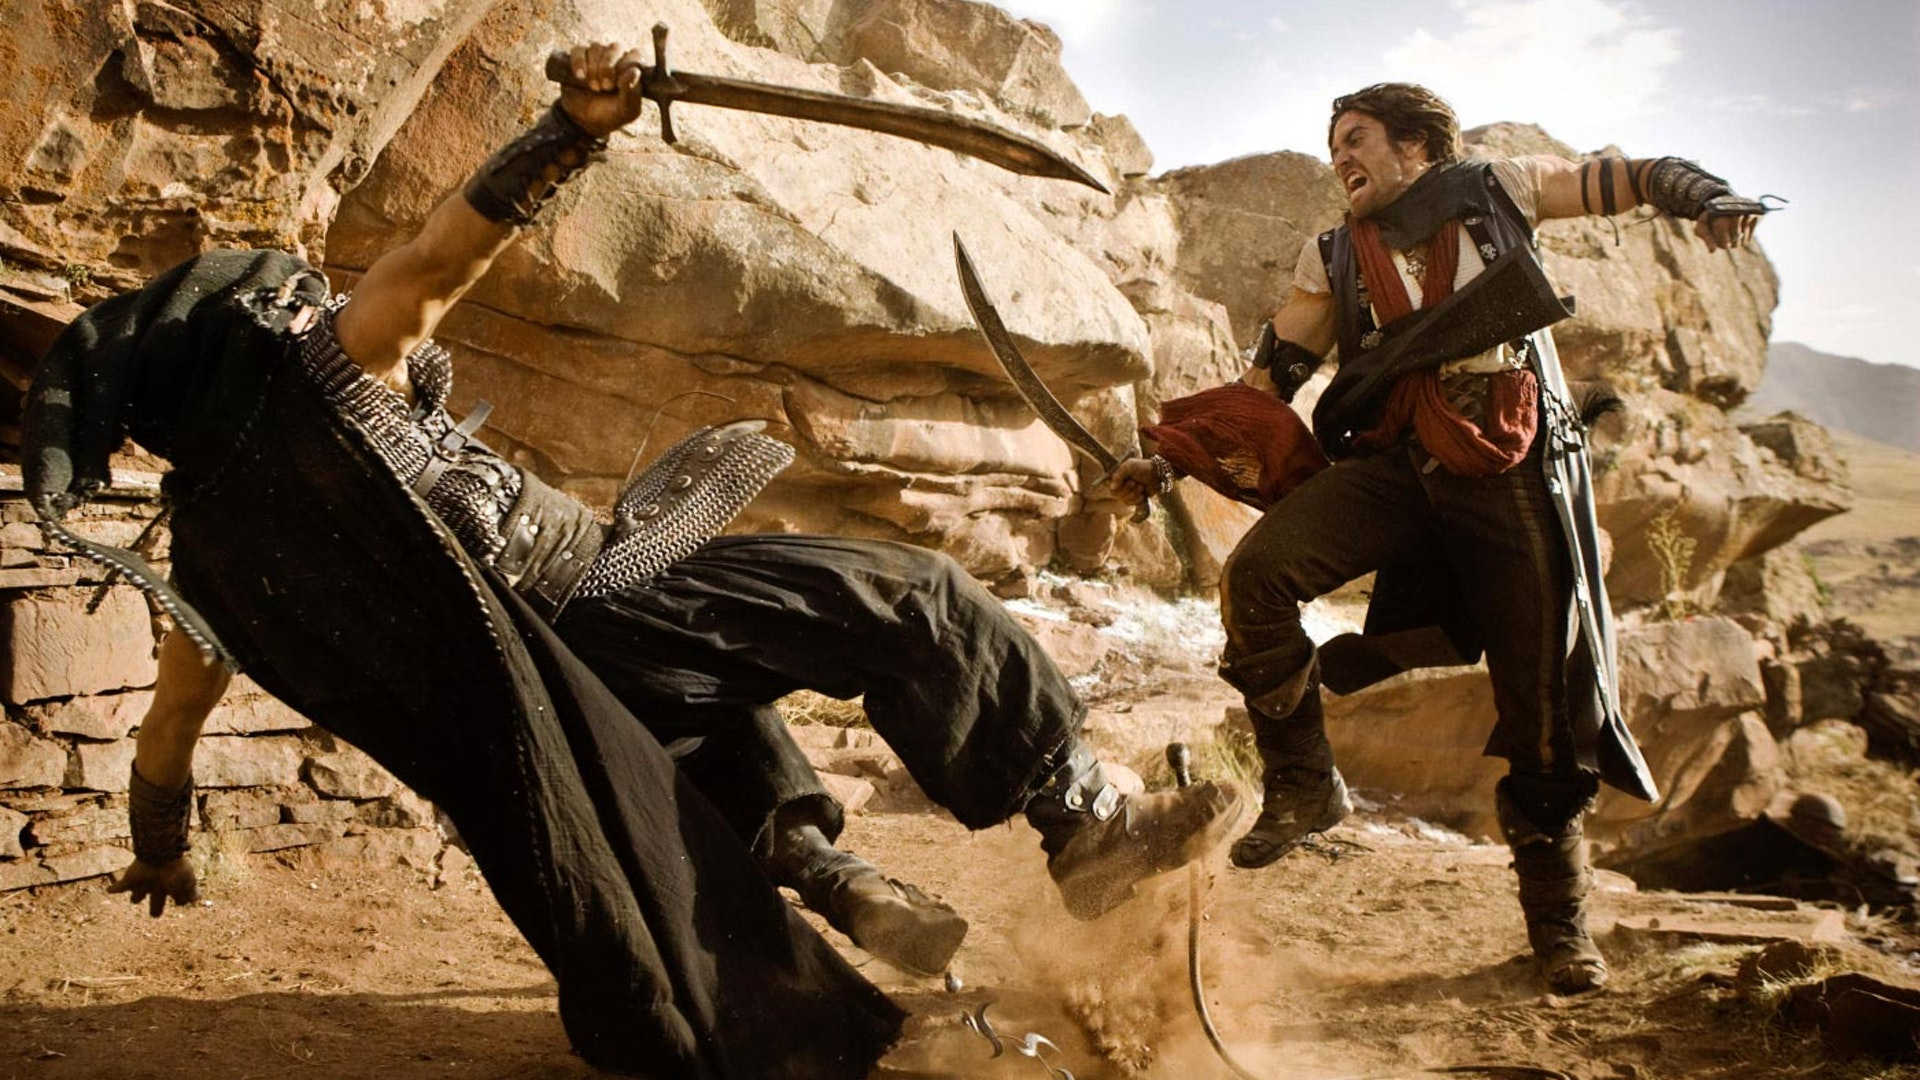 prince_of_persia_the_sands_of_time_83